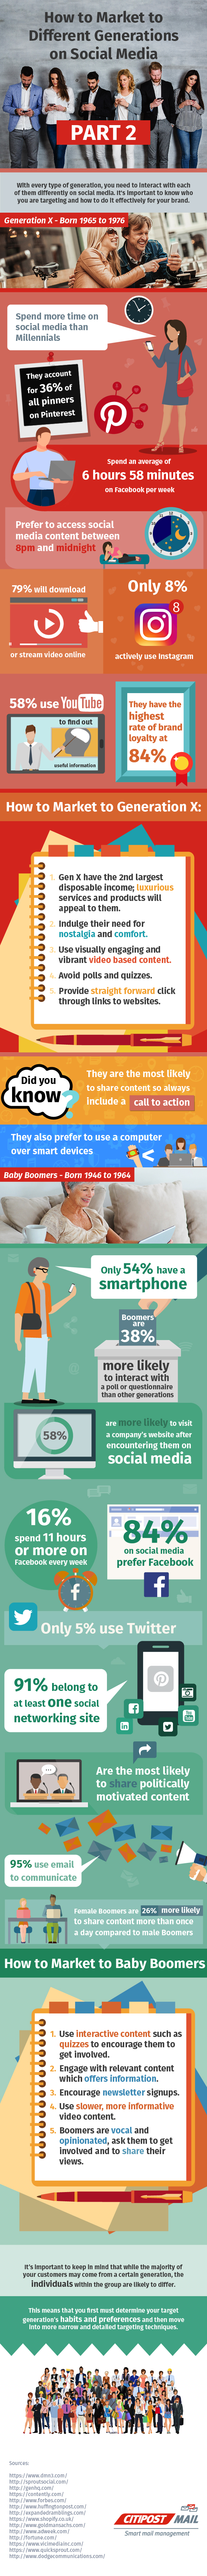 How to Market to Generations Infographic Part 2